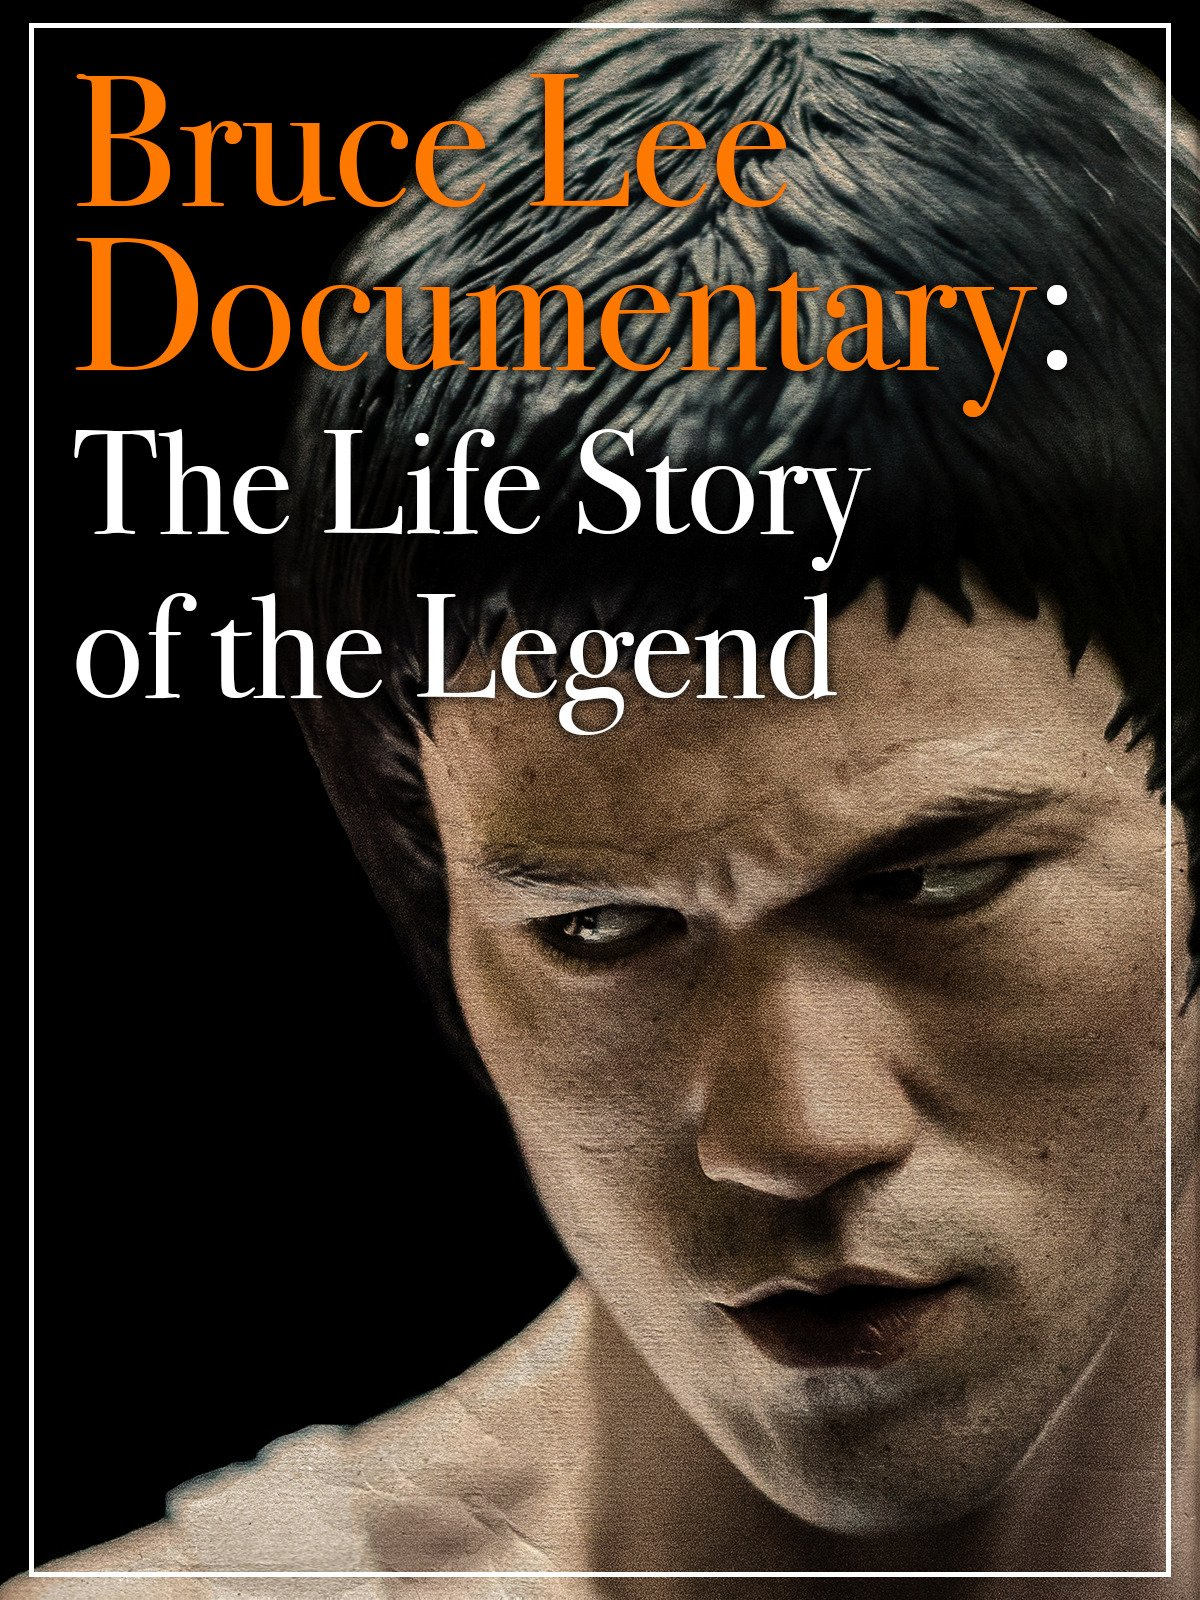 Bruce Lee Documentary: The life Story of the Legend on Amazon Prime Video UK